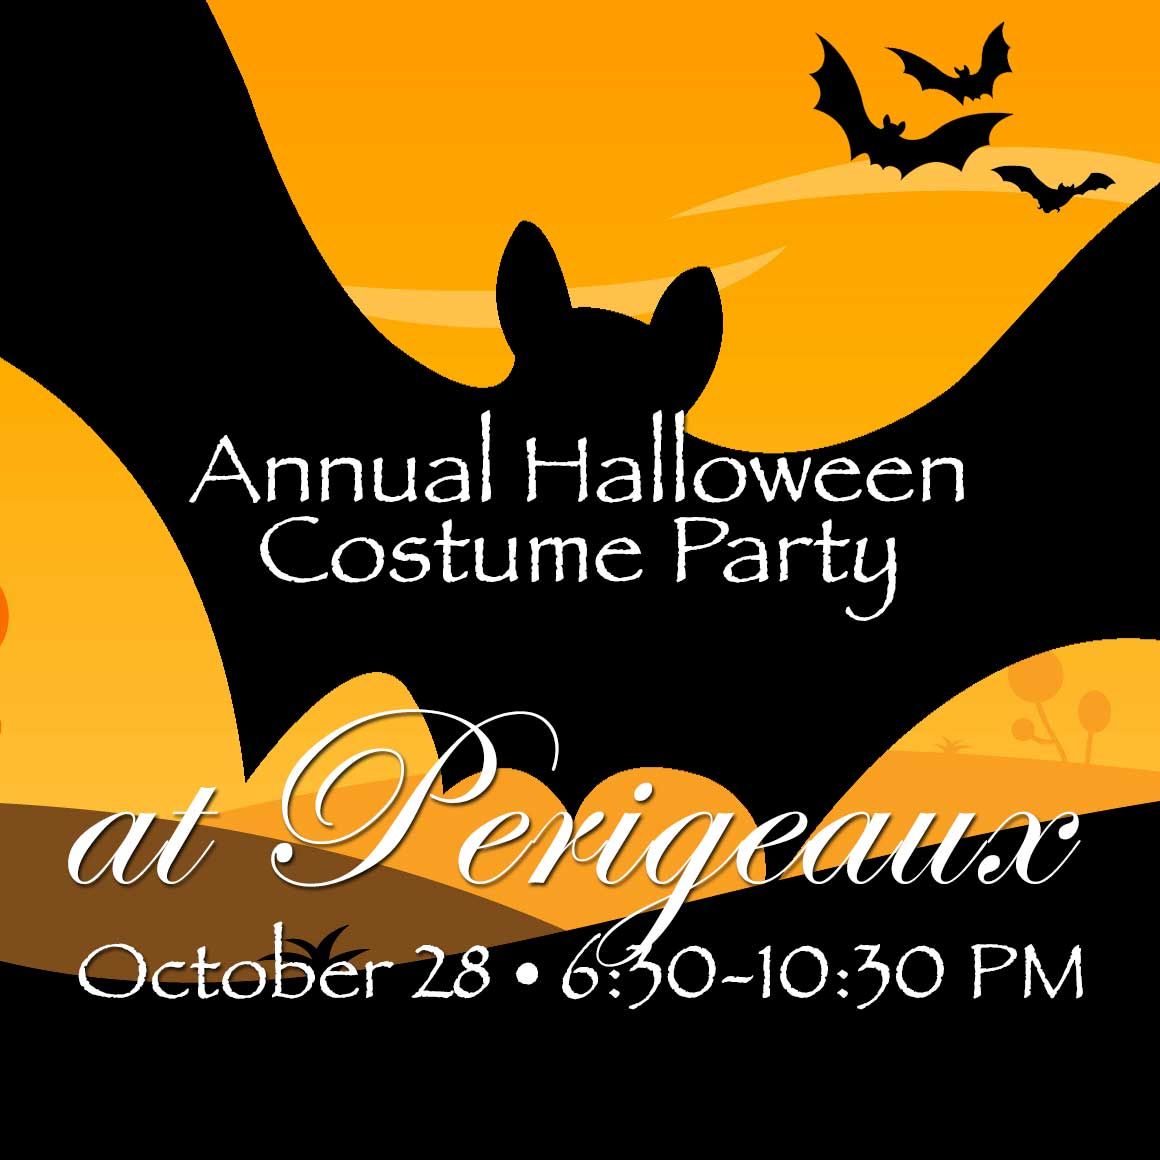 Annual Halloween Costume Party - Perigeaux Vineyards and Winery